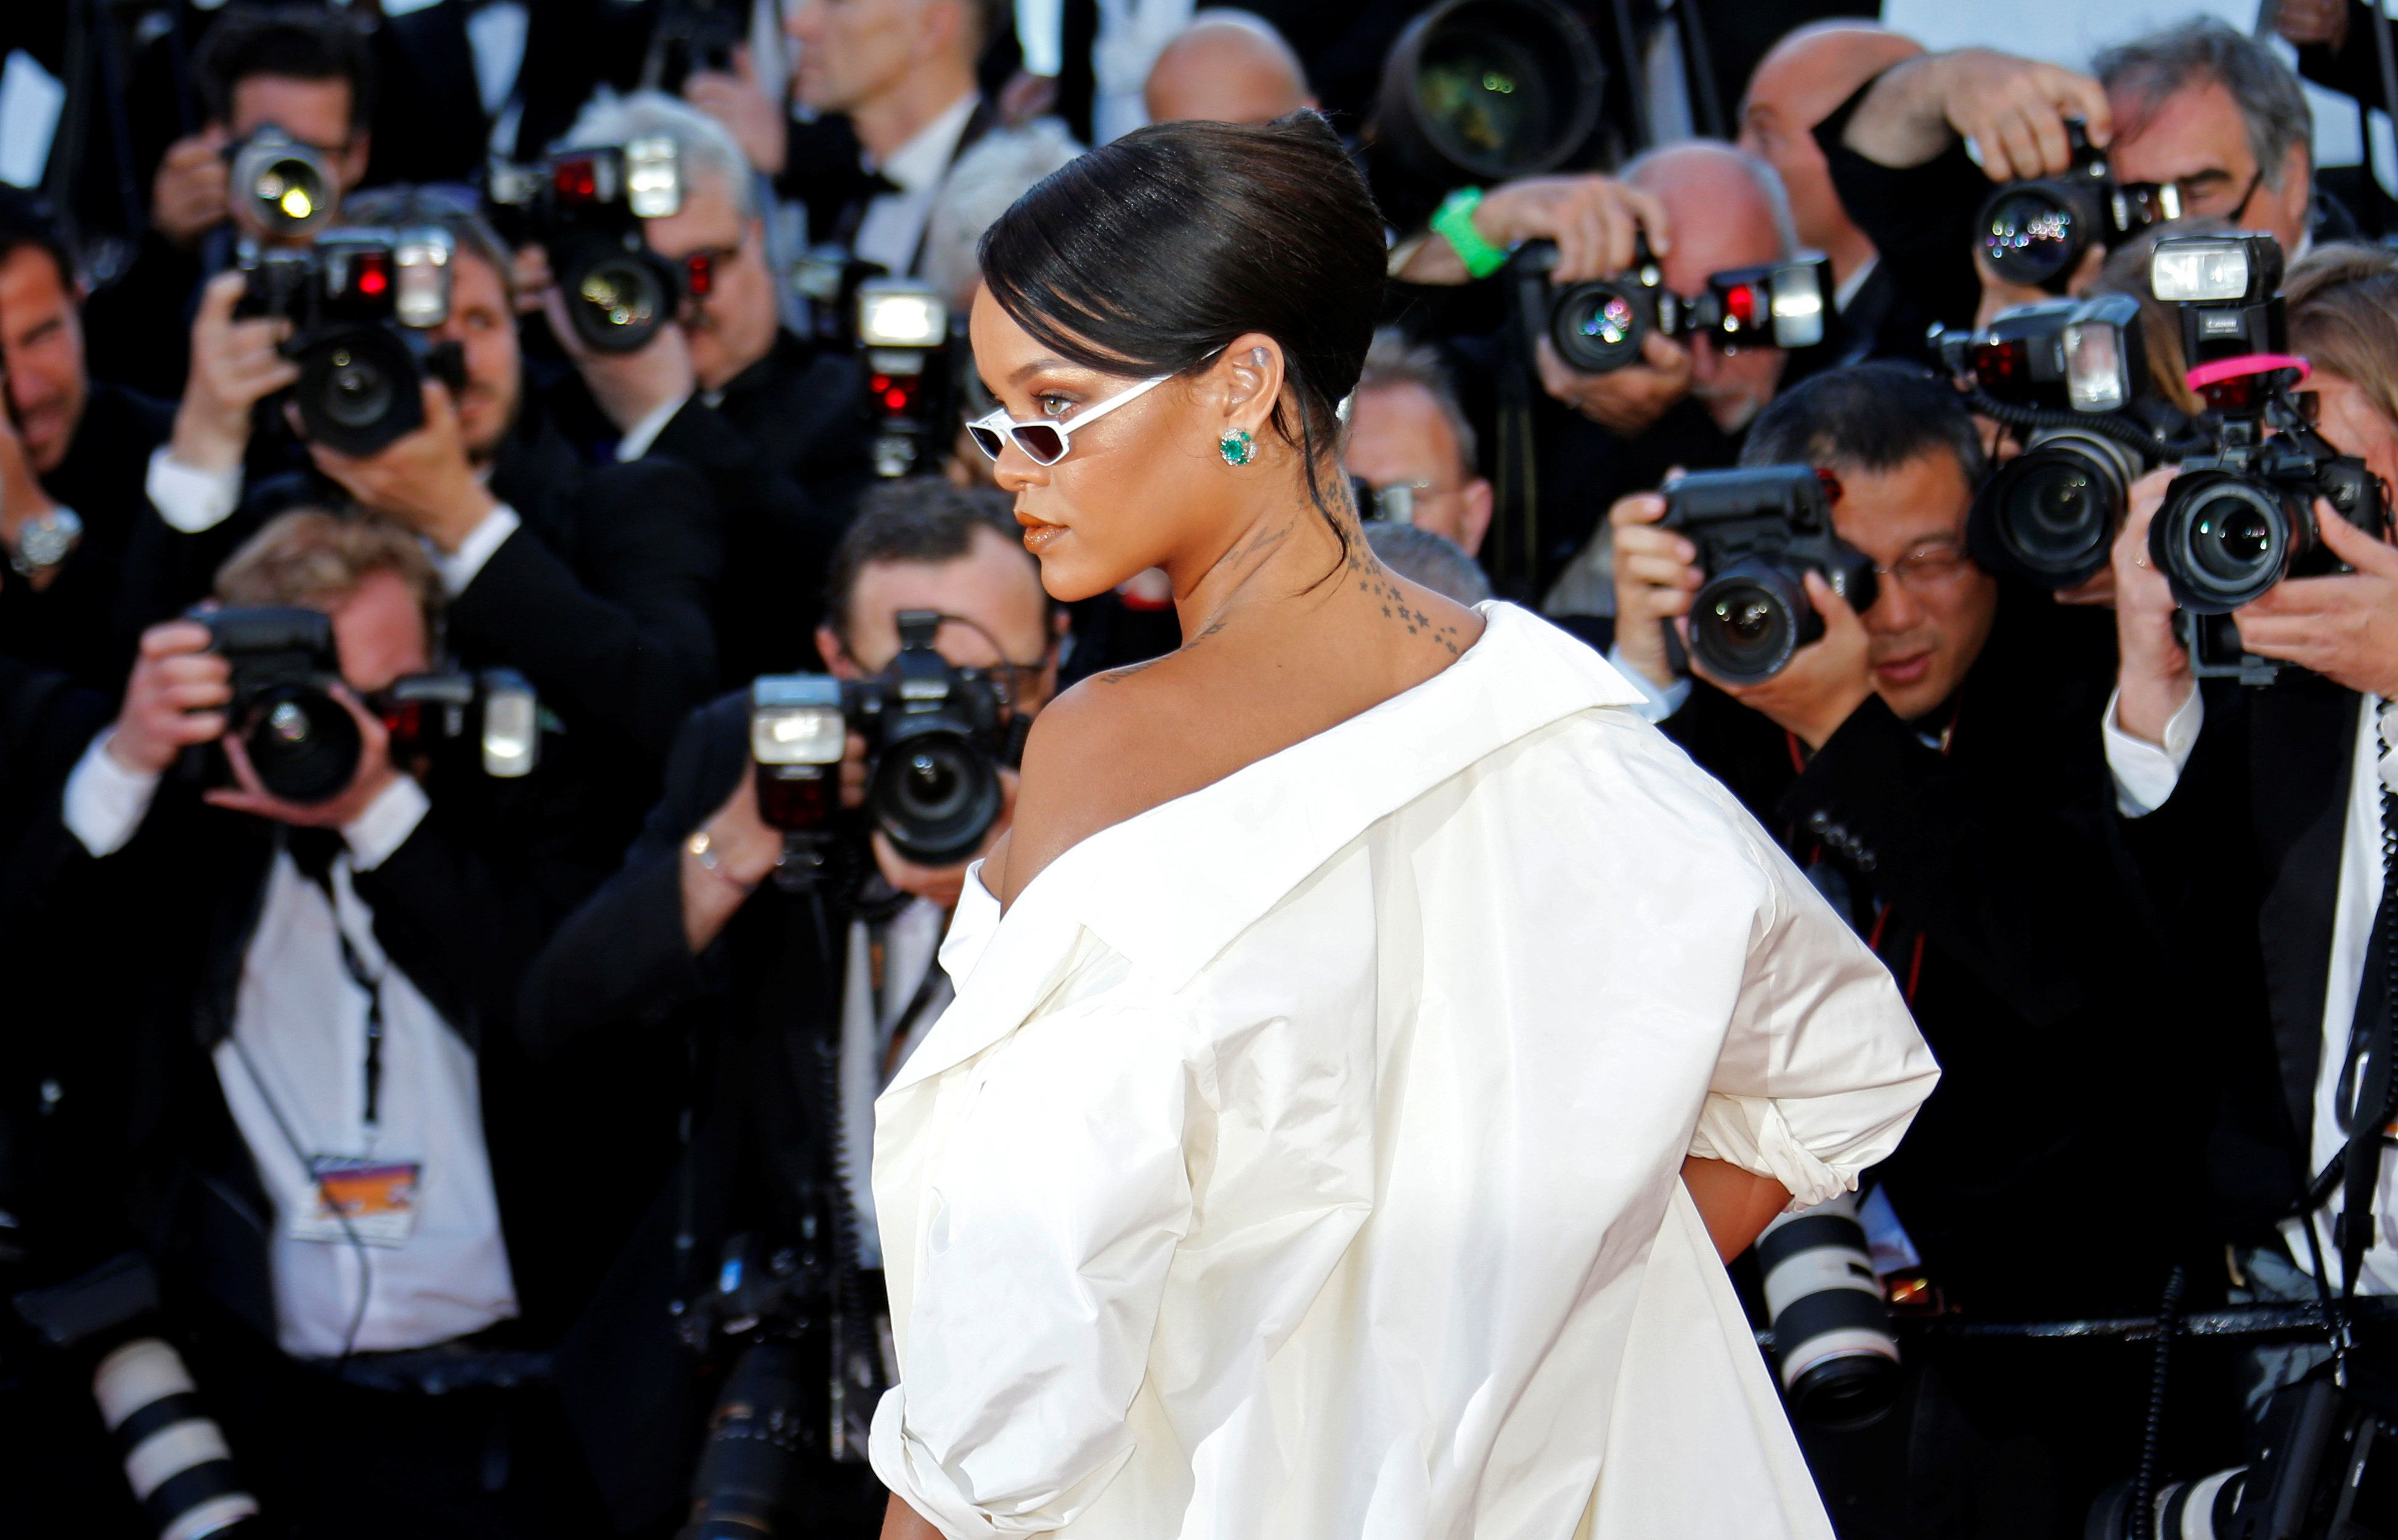 "70th Cannes Film Festival - Screening of the film  ""Okja"" in competition - Red Carpet Arrivals - Cannes, France. 19/05/2017. Singer Rihanna poses. REUTERS/Jean-Paul Pelissier"